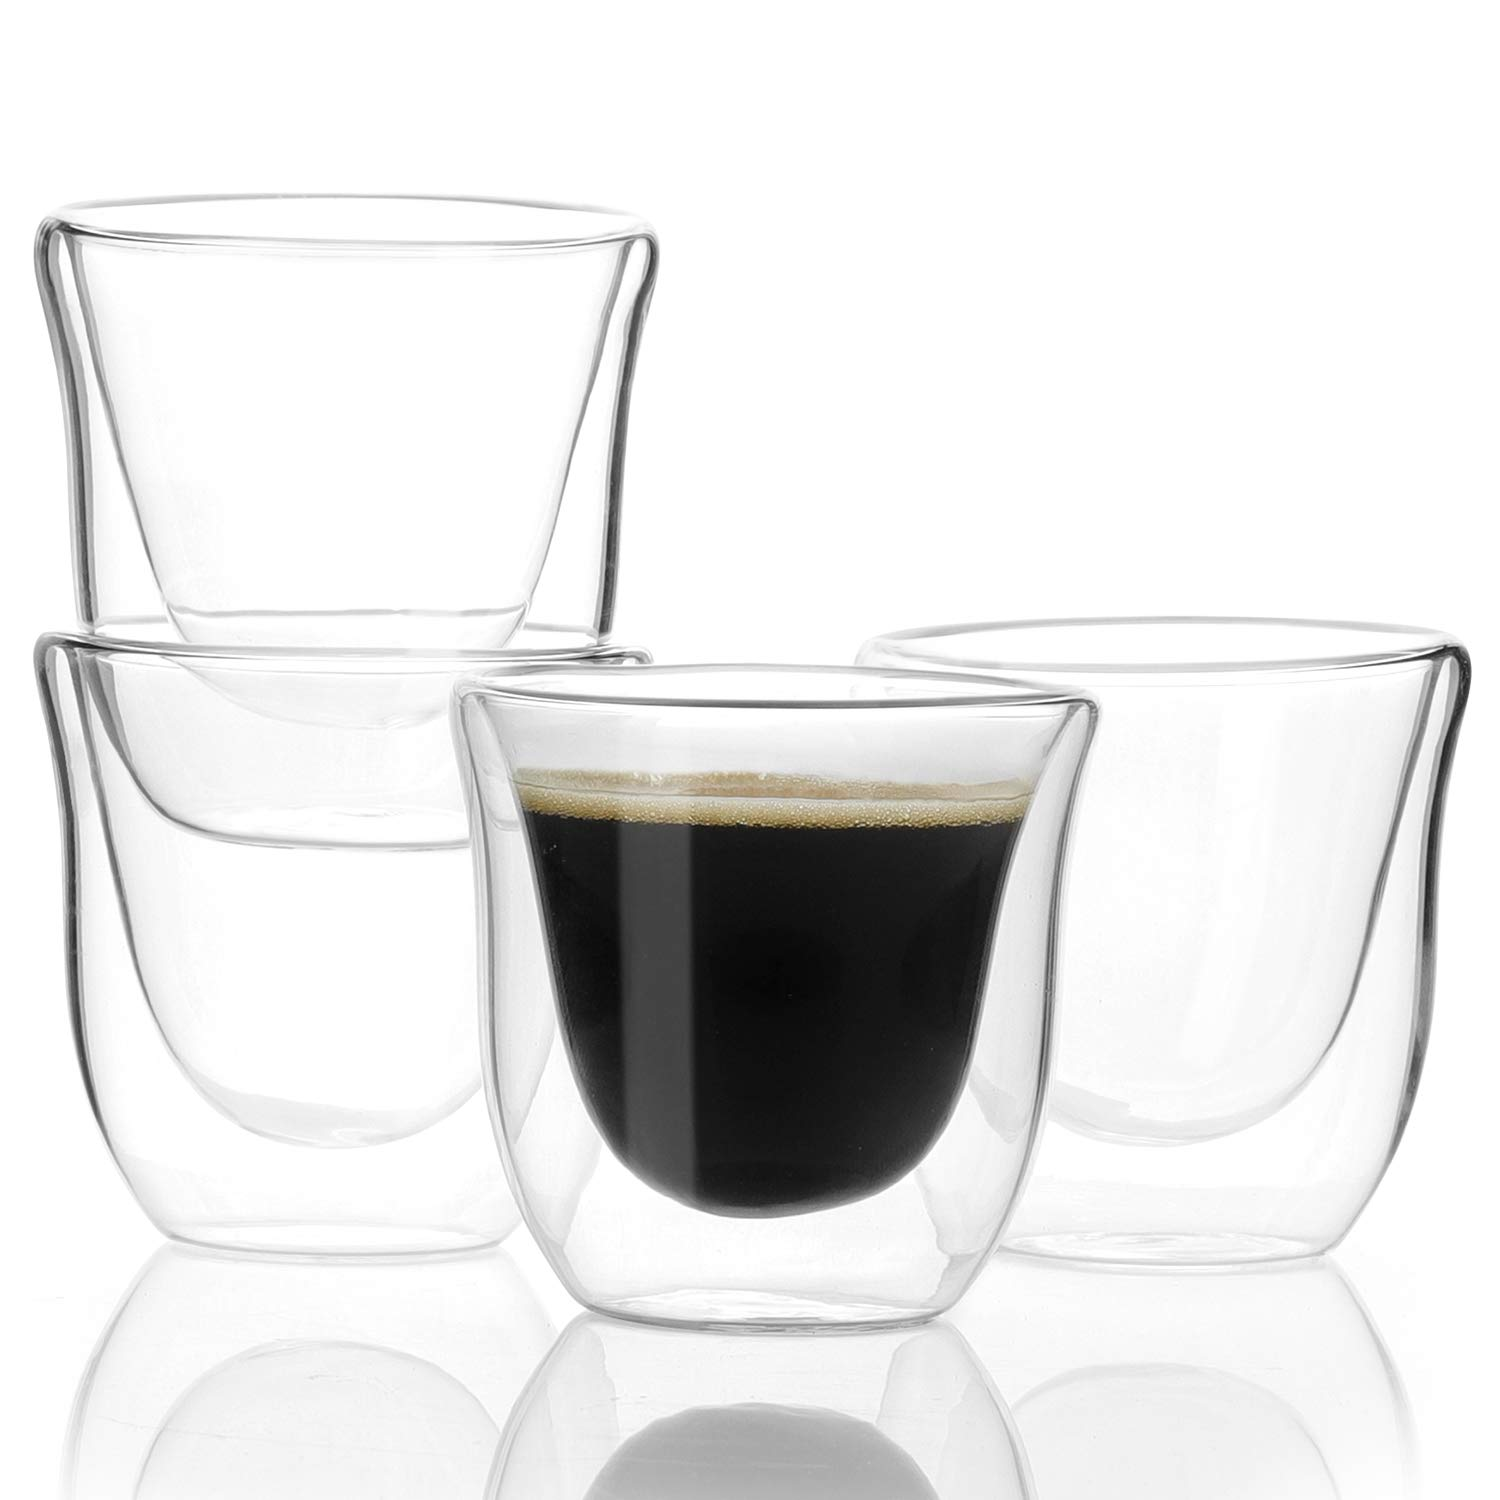 Sweese 4613 Espresso Shot Glasses Cups - 2.4 oz Double Walled Insulated Glass Espresso coffee Mugs, Set of 4